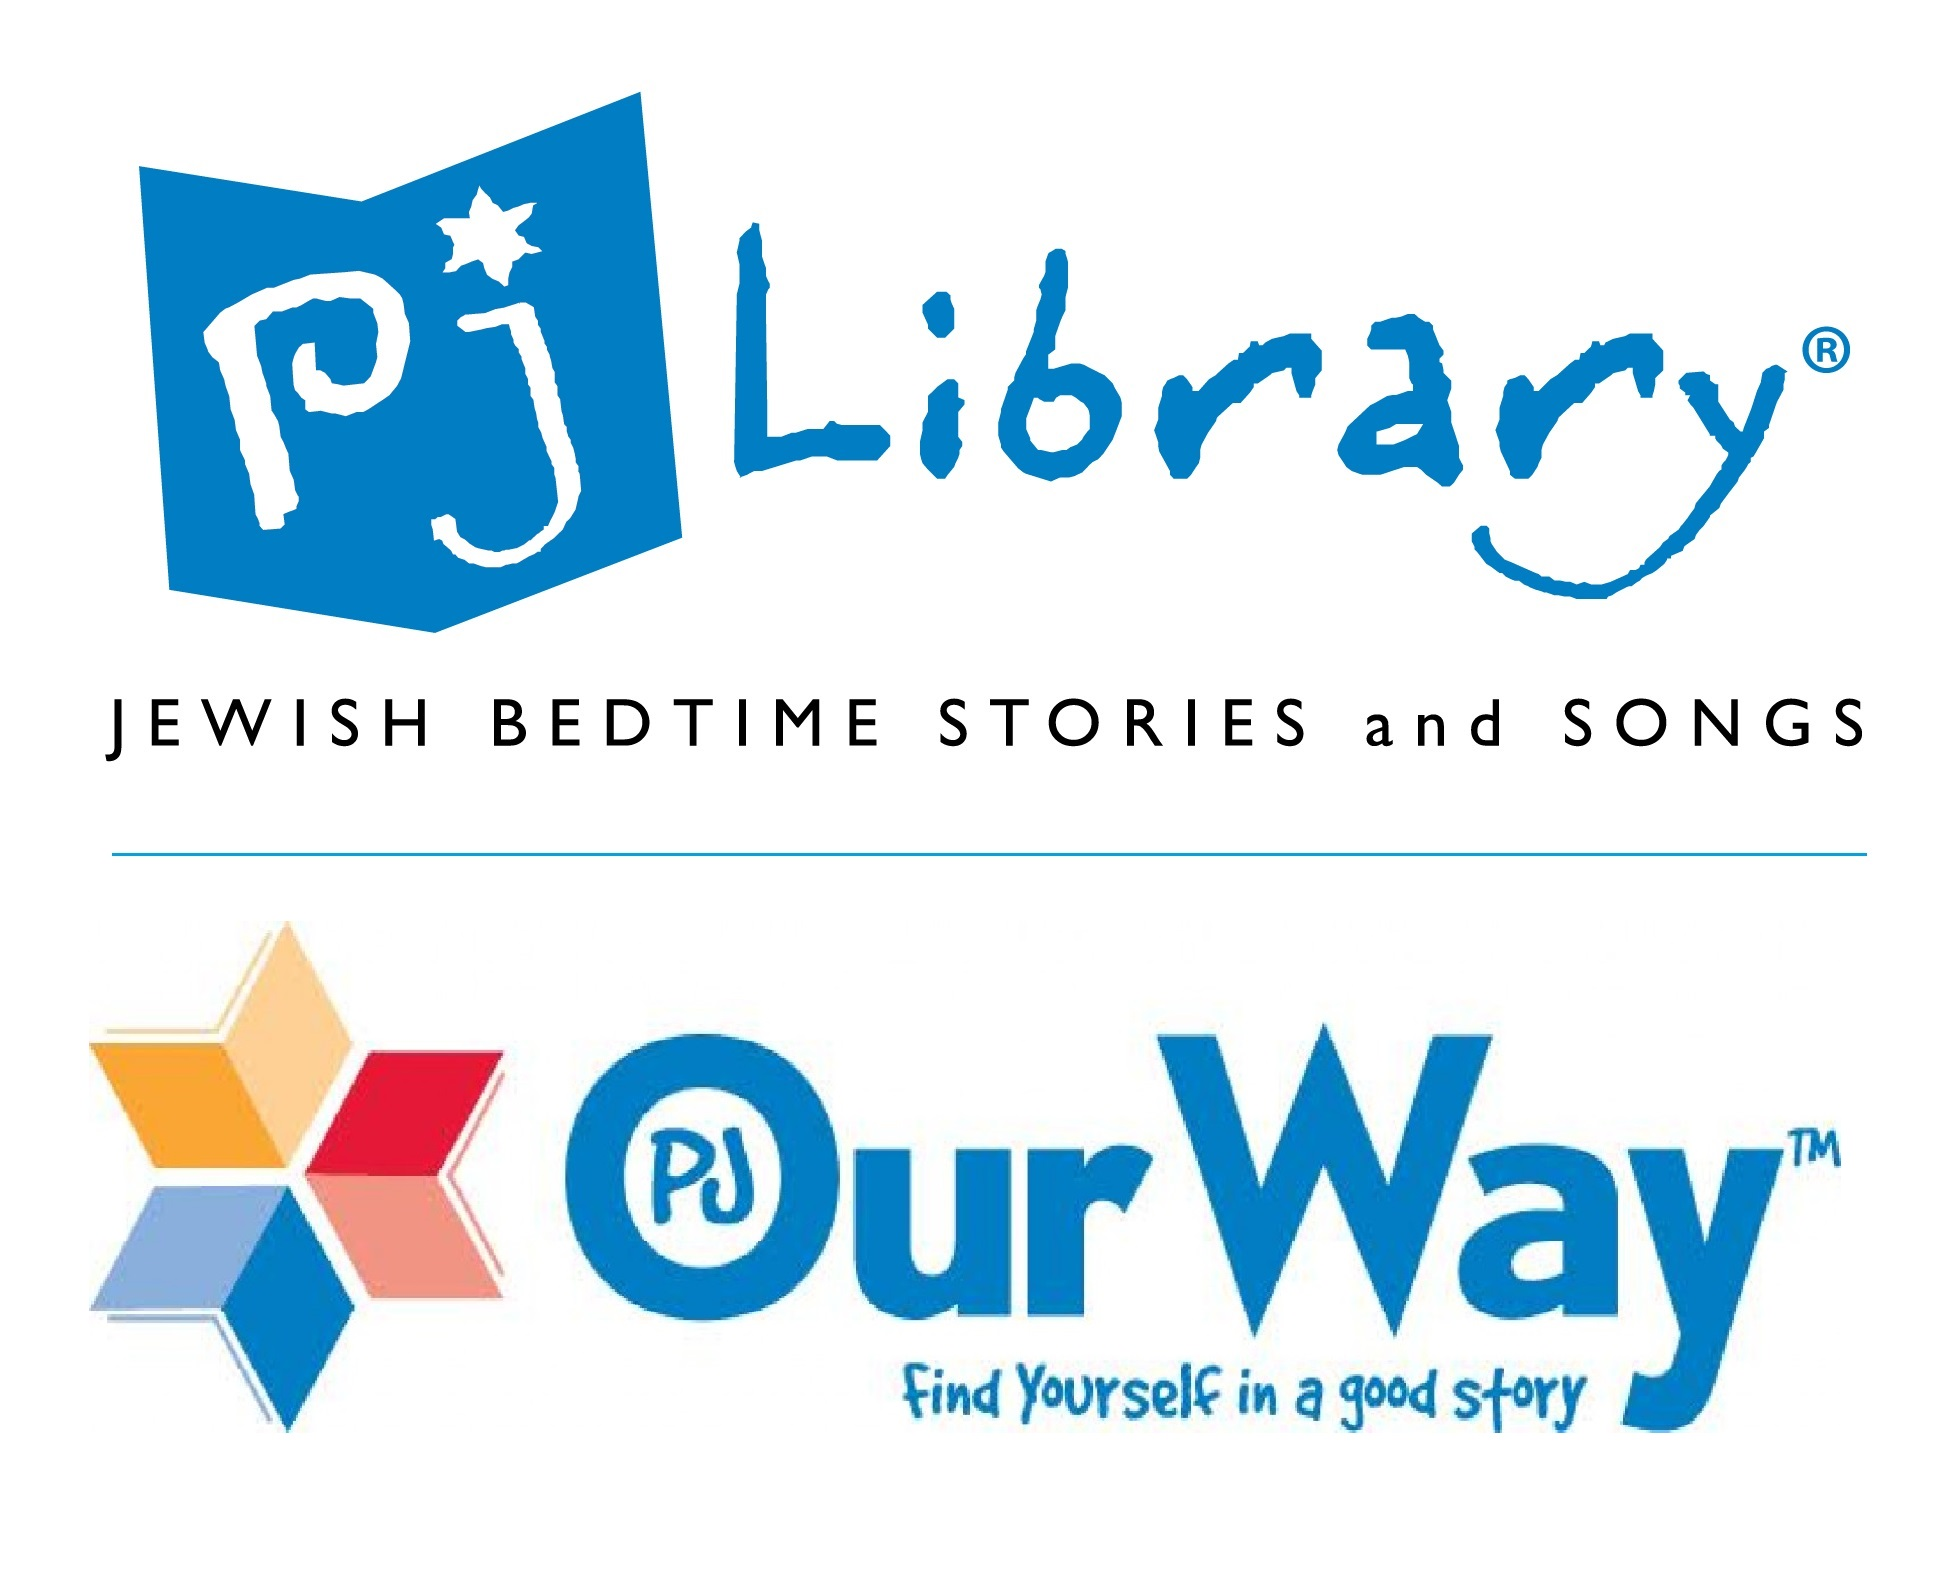 PJ Library and PJ Our Way